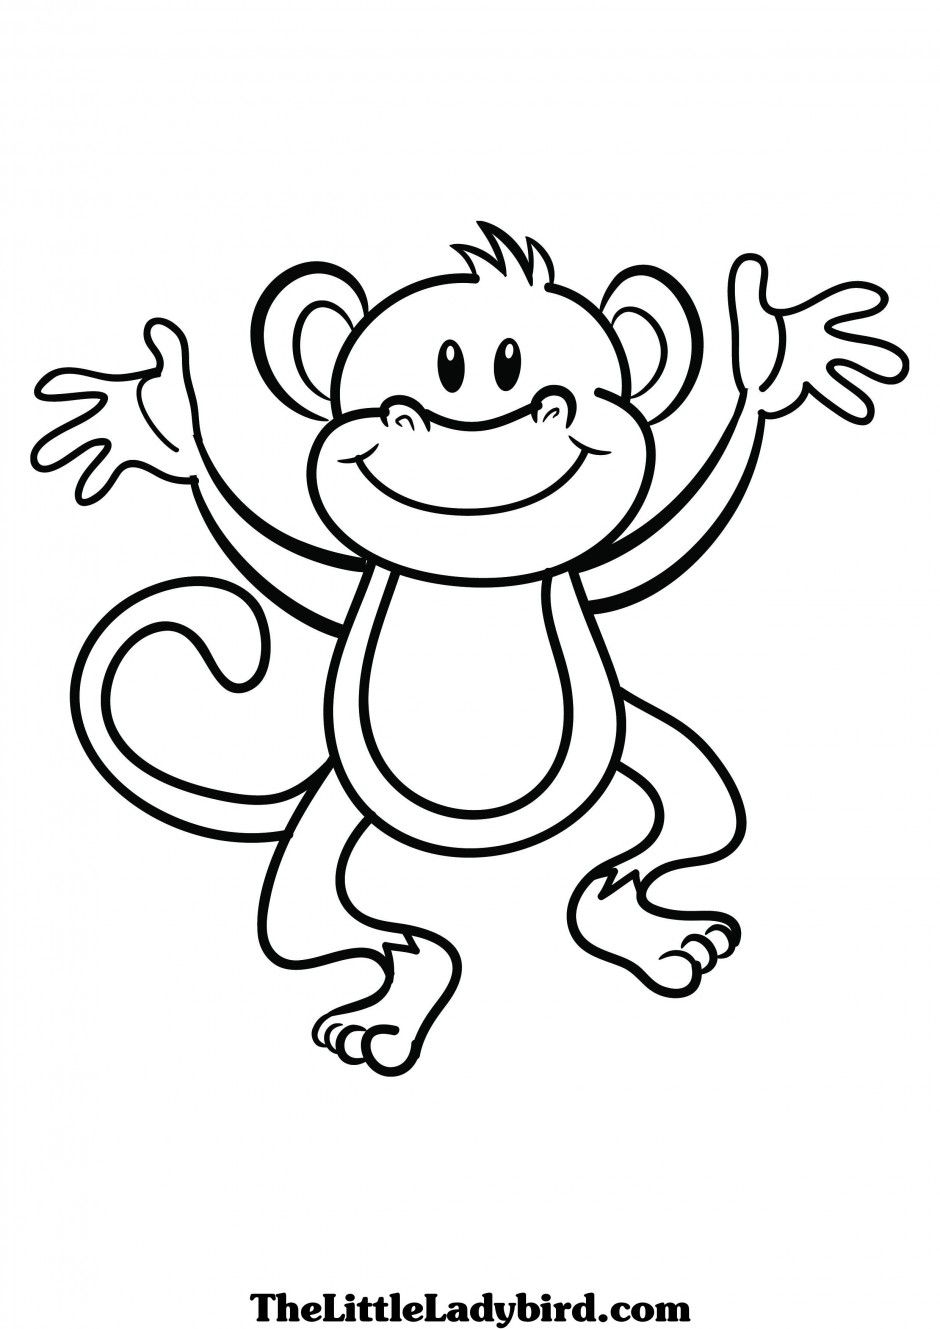 coloring pages of monkey printable for children and adults let abby color some of these and frame them for the nursery - Coloring Pages Of Monkeys